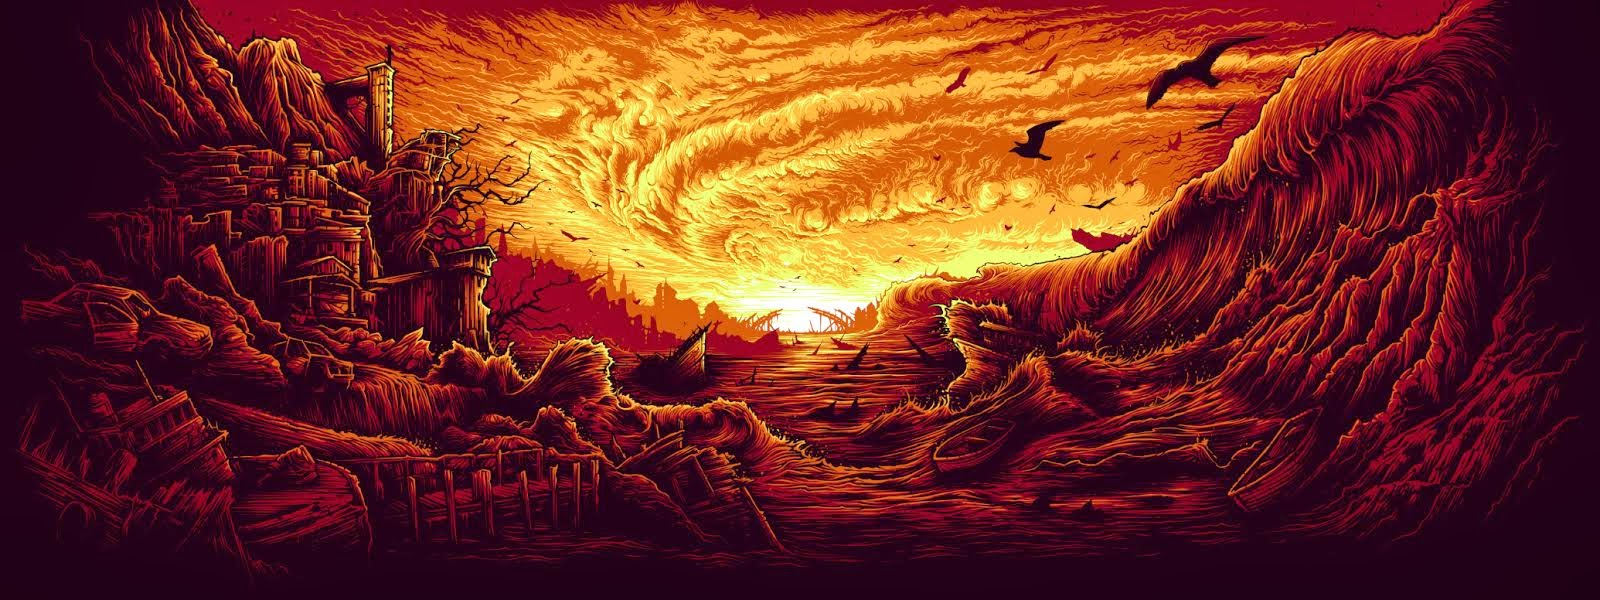 View Dan Mumford Fire In The Sky Print Dan Mumford This Is The End 1044902 Hd Wallpaper Backgrounds Download